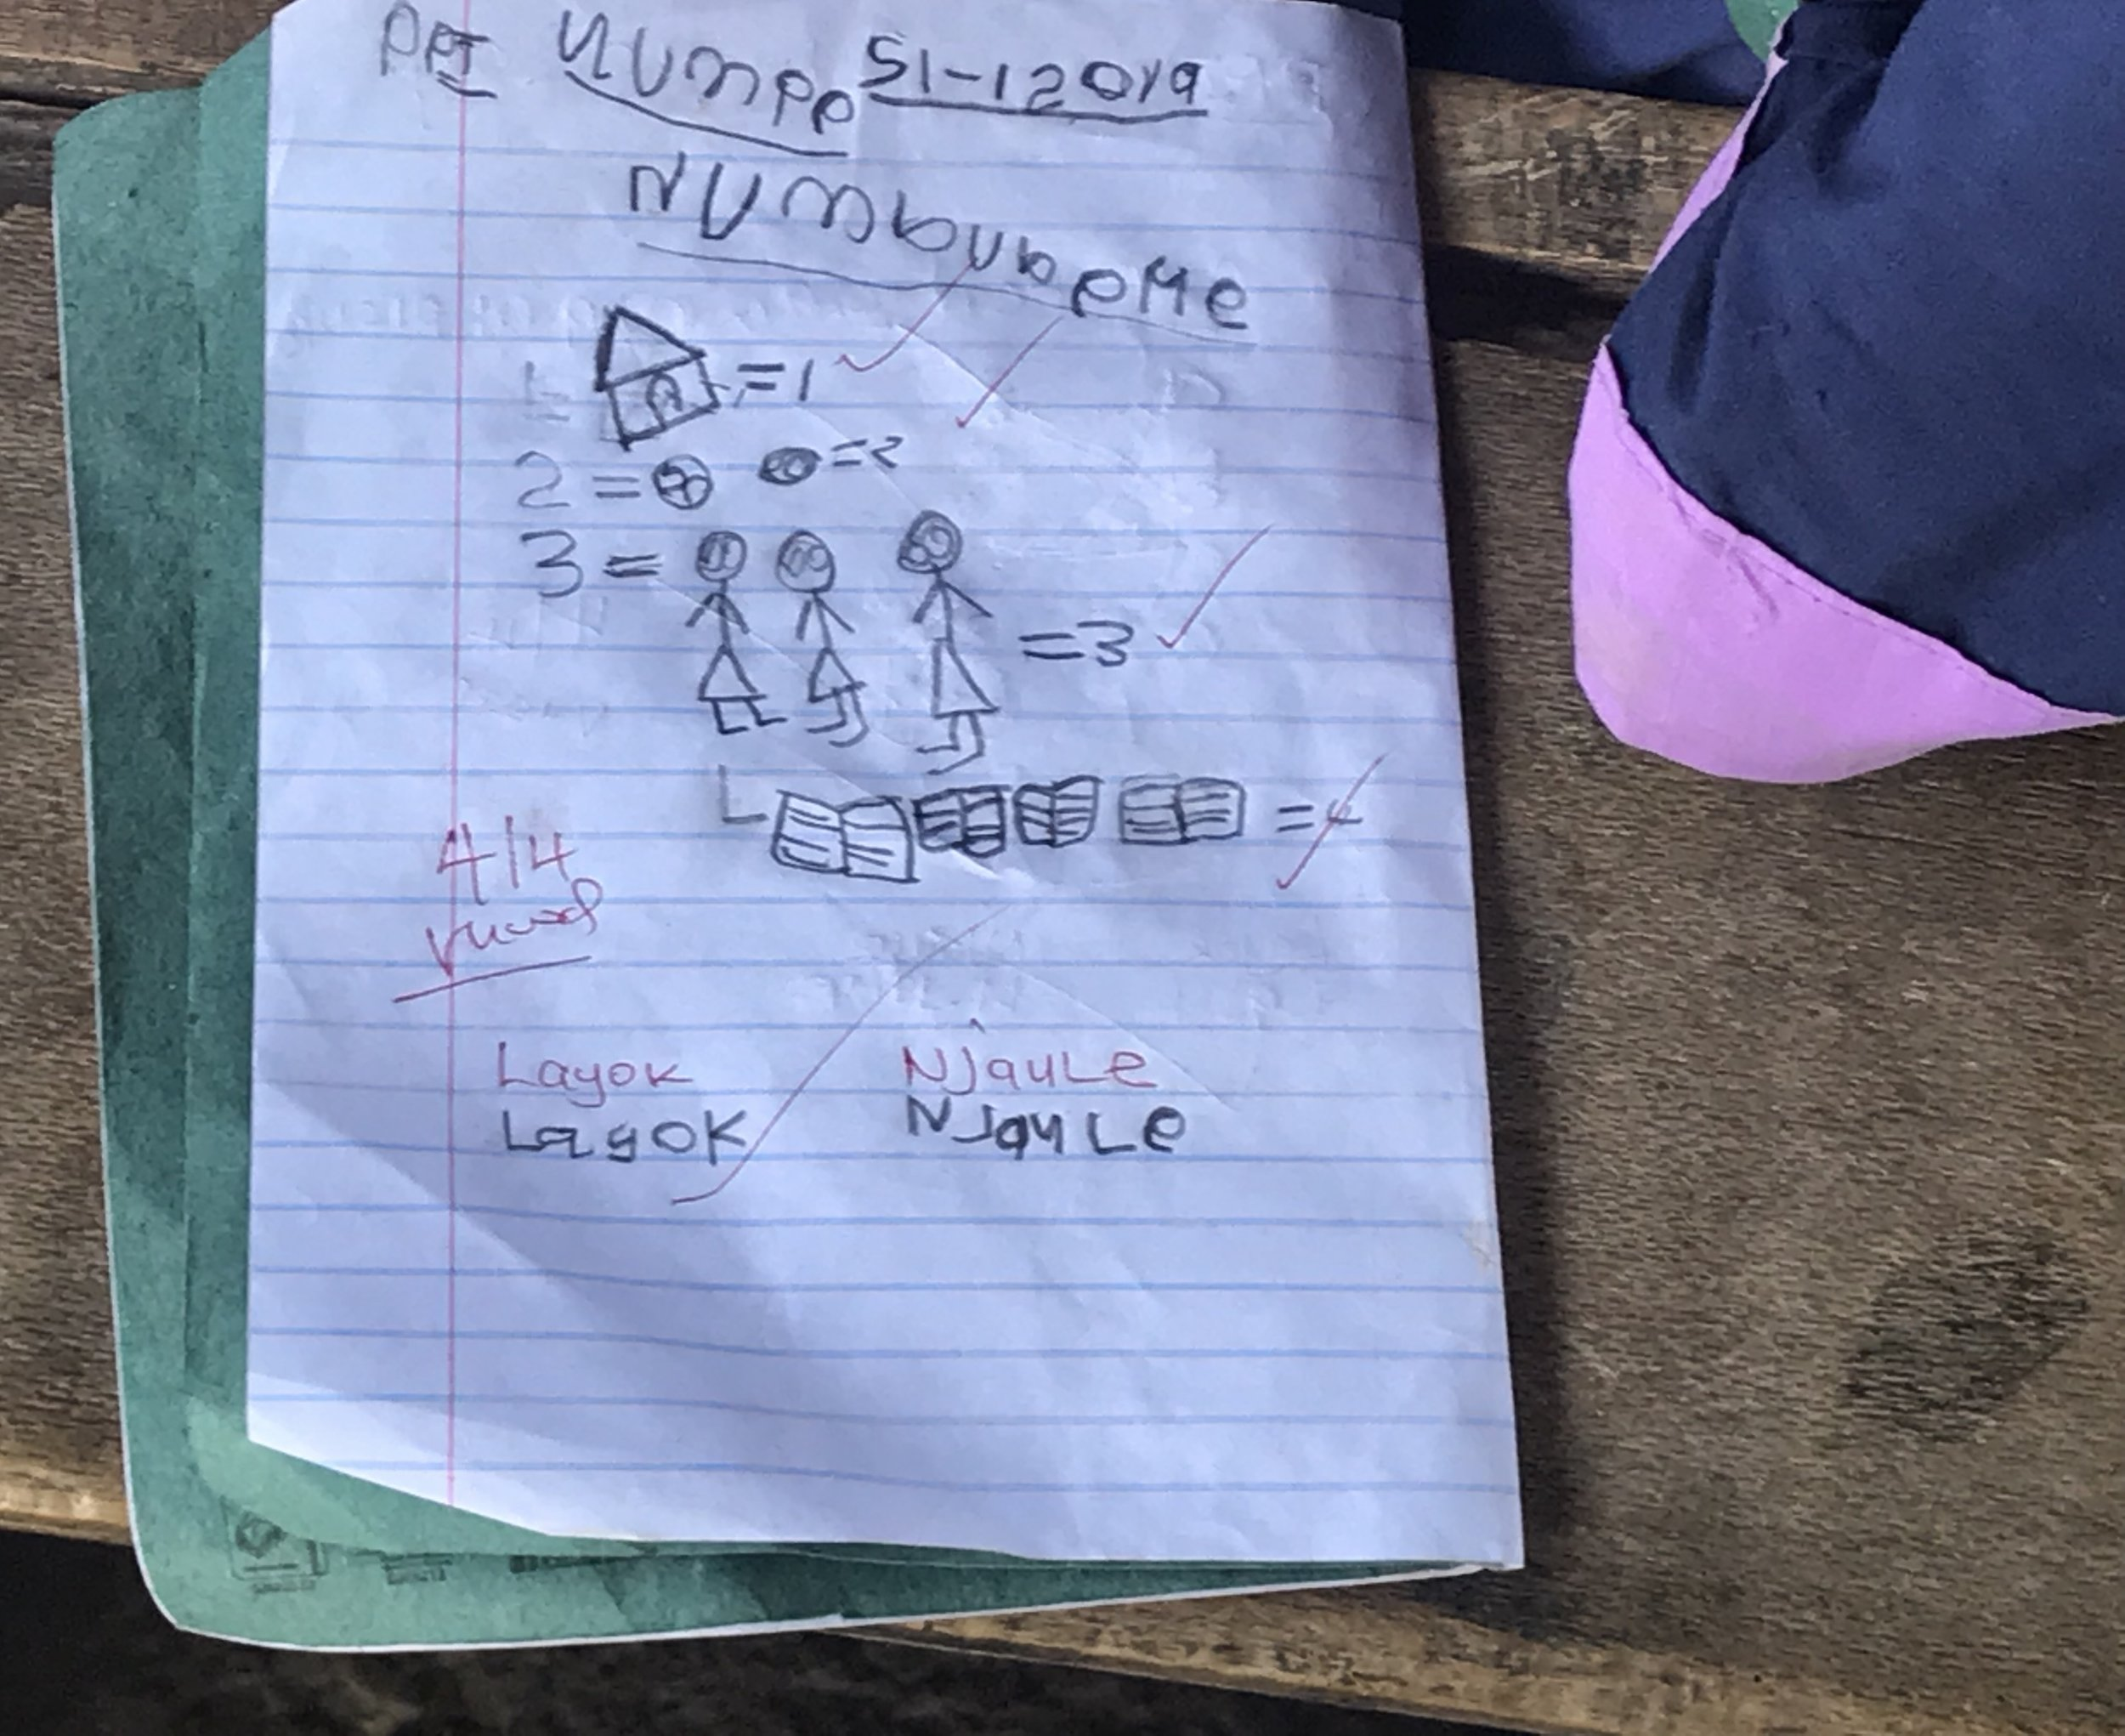 A nursery student learns to write numbers, count and write her name